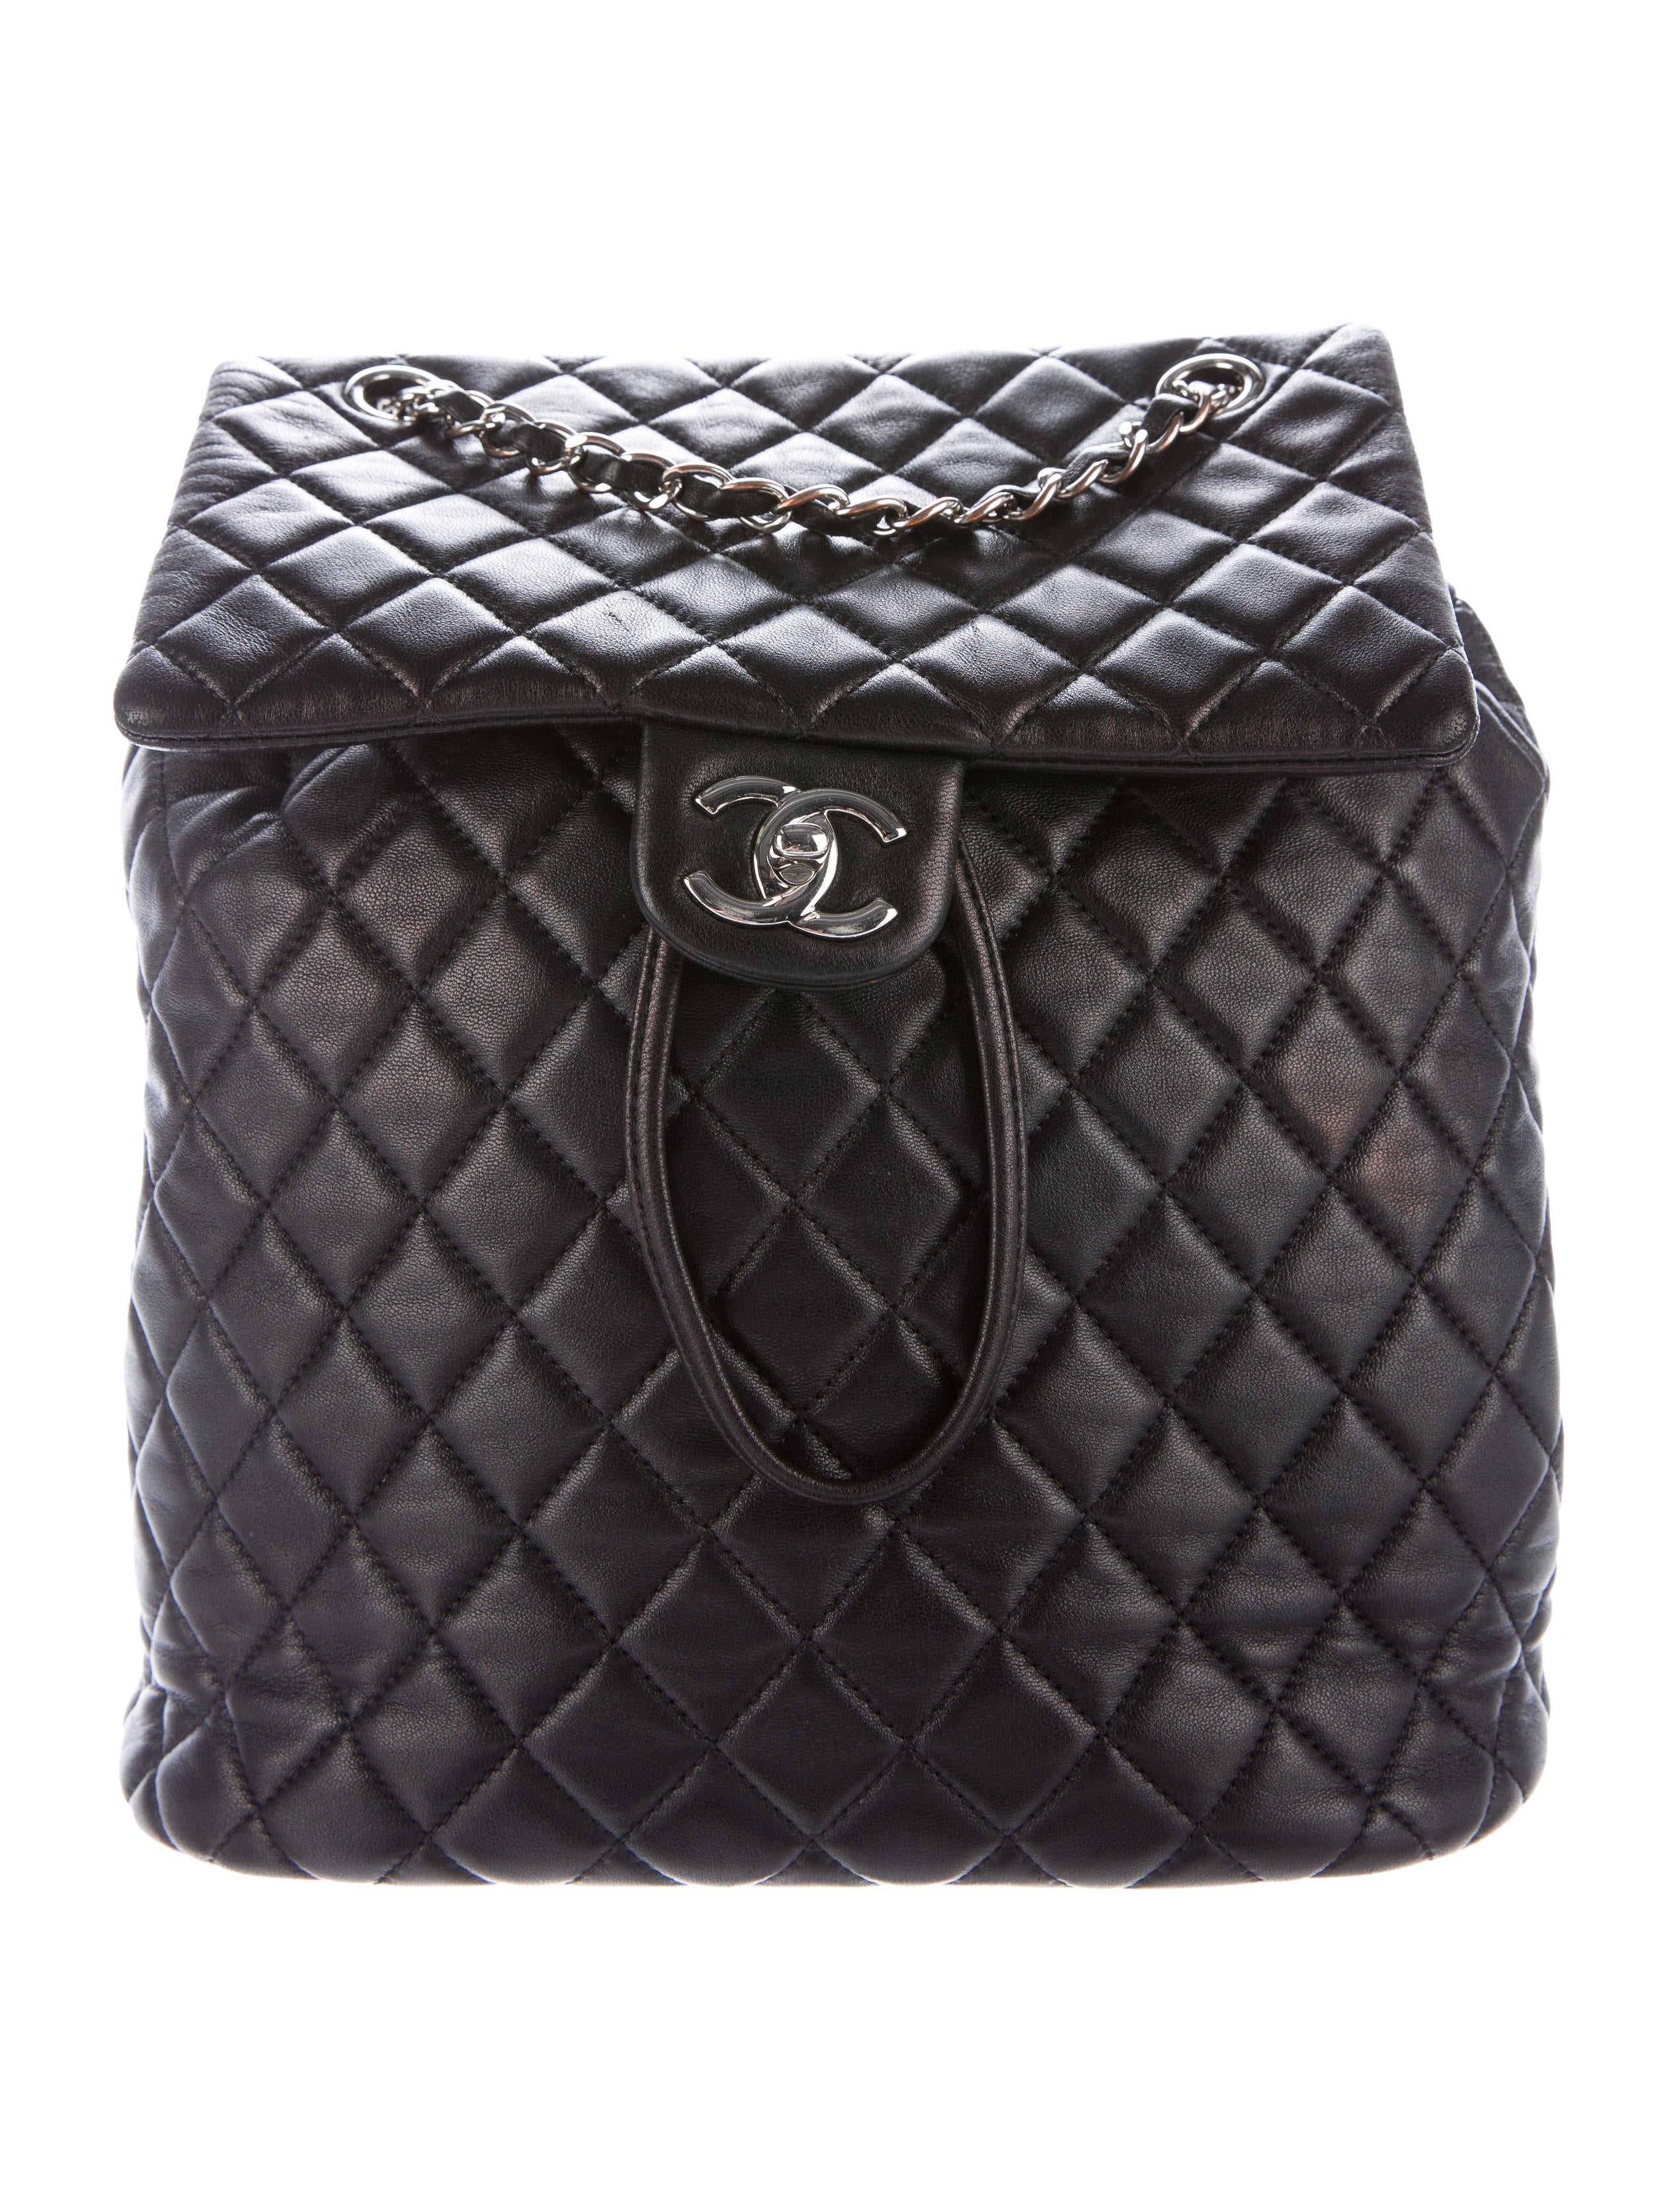 Chanel Spring 2016 Quilted Urban Spirit Backpack - Handbags ... 5fdcfb1dcd